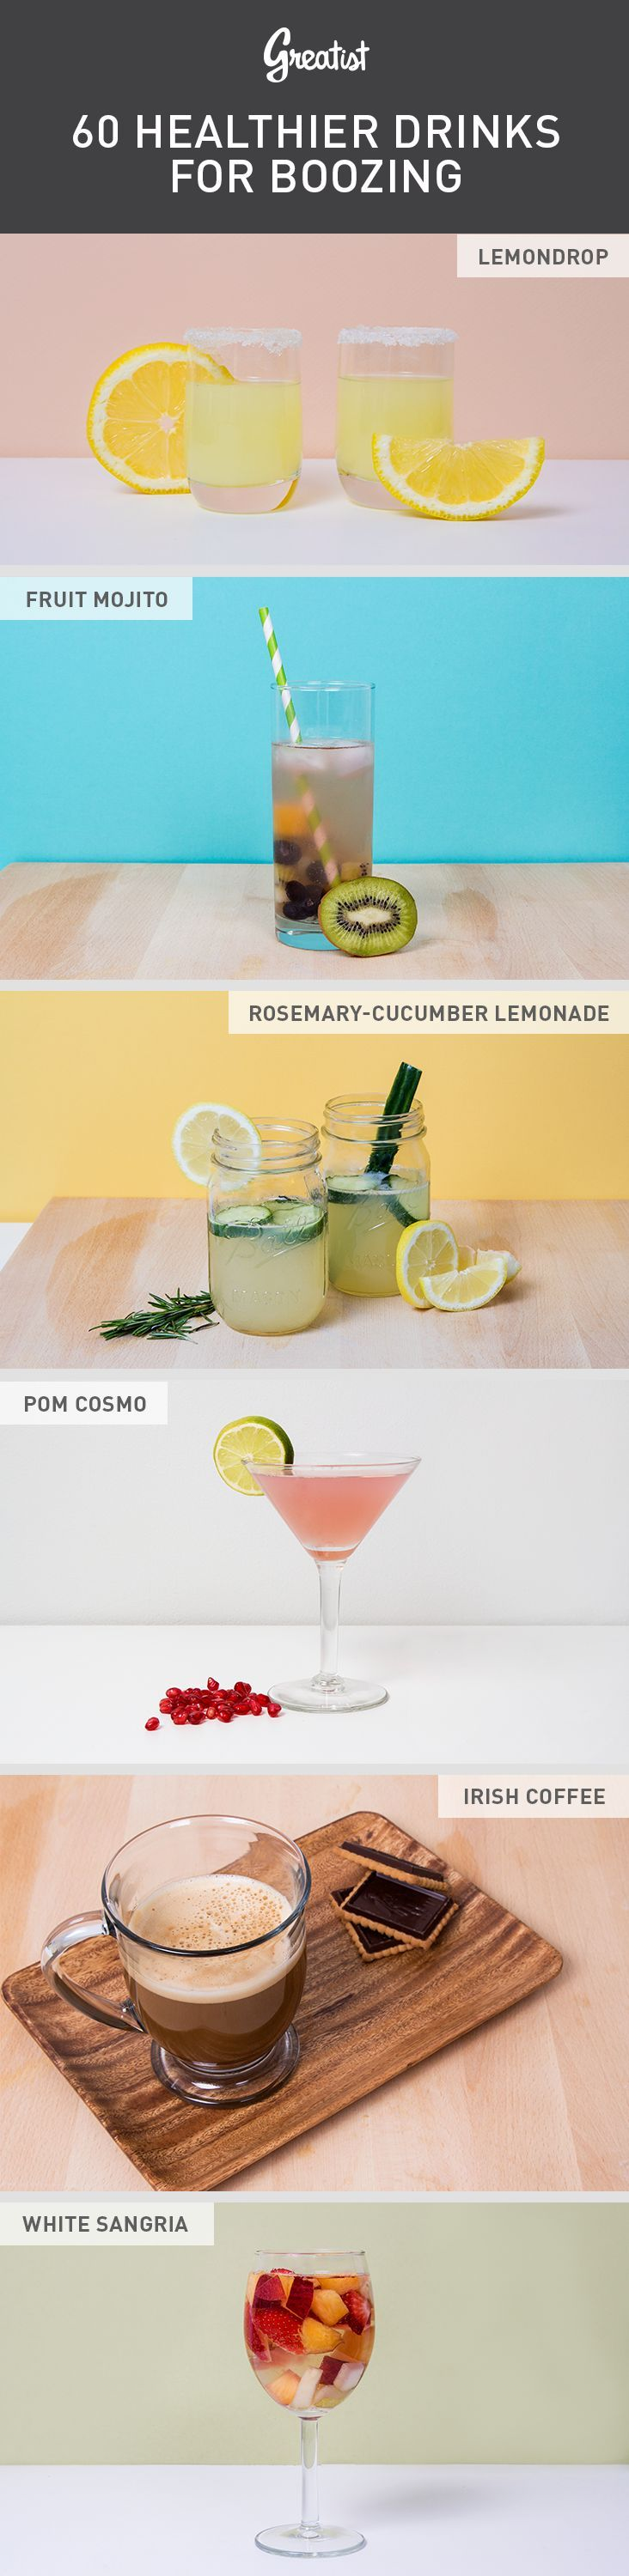 60 Healthier Drinks for Boozing #booze #drinks #cocktails